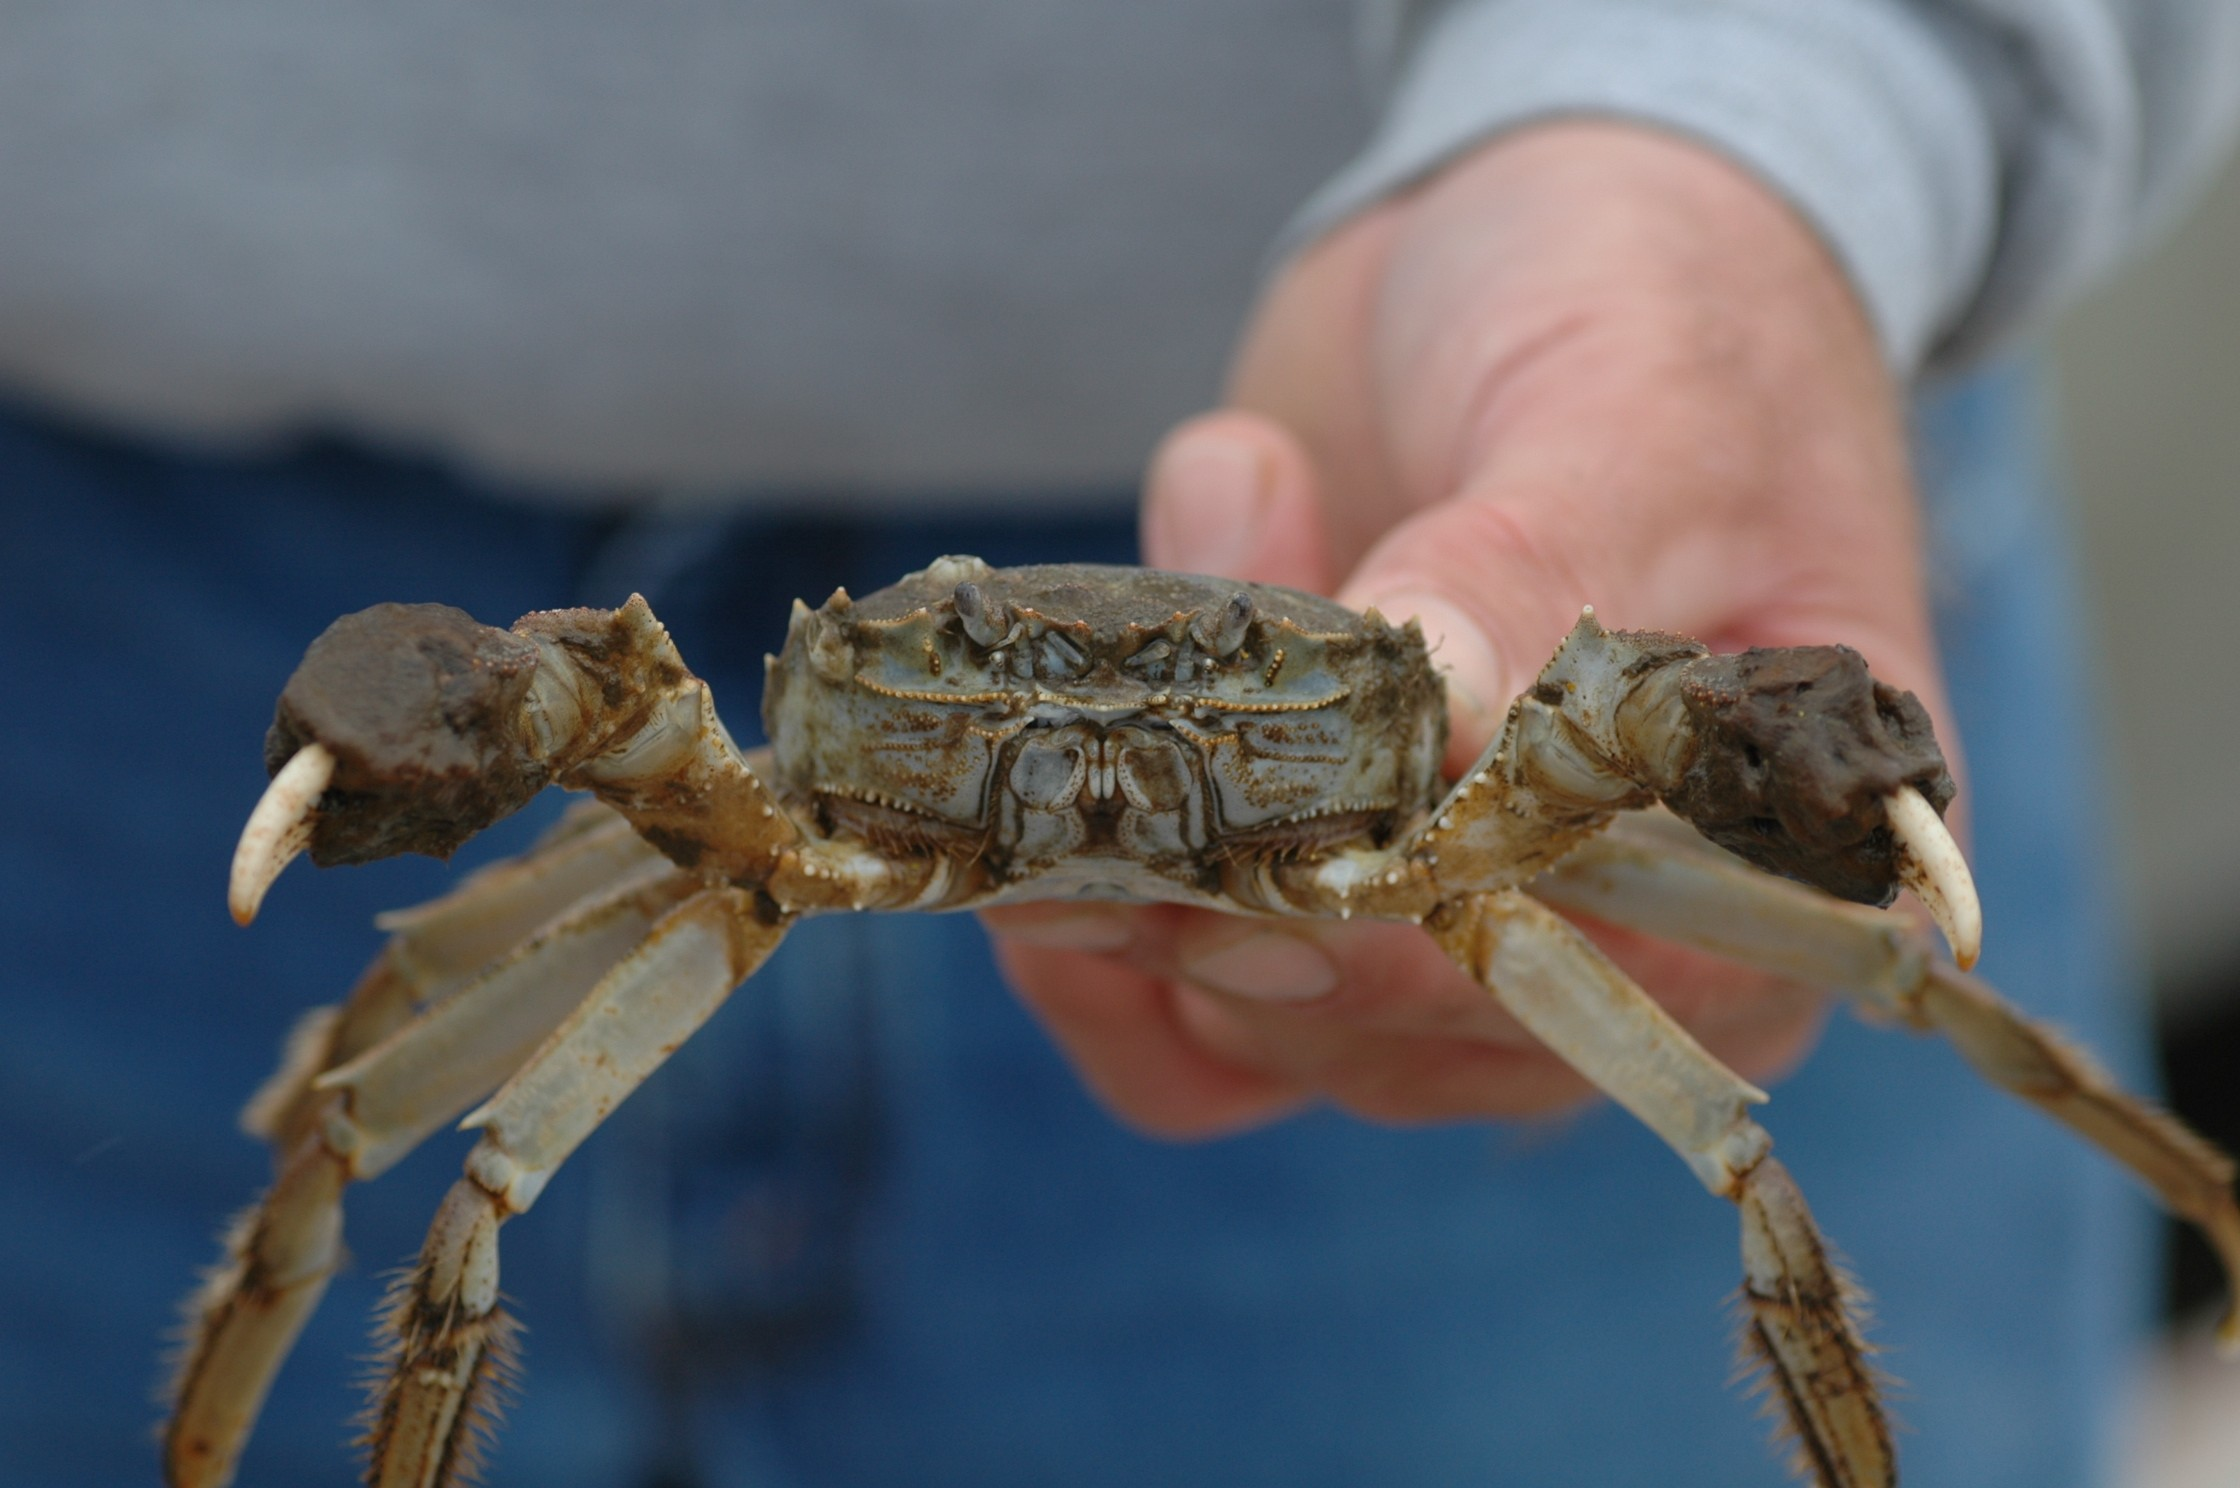 An image of the Chinese mitten crab Eriocheir sinensis